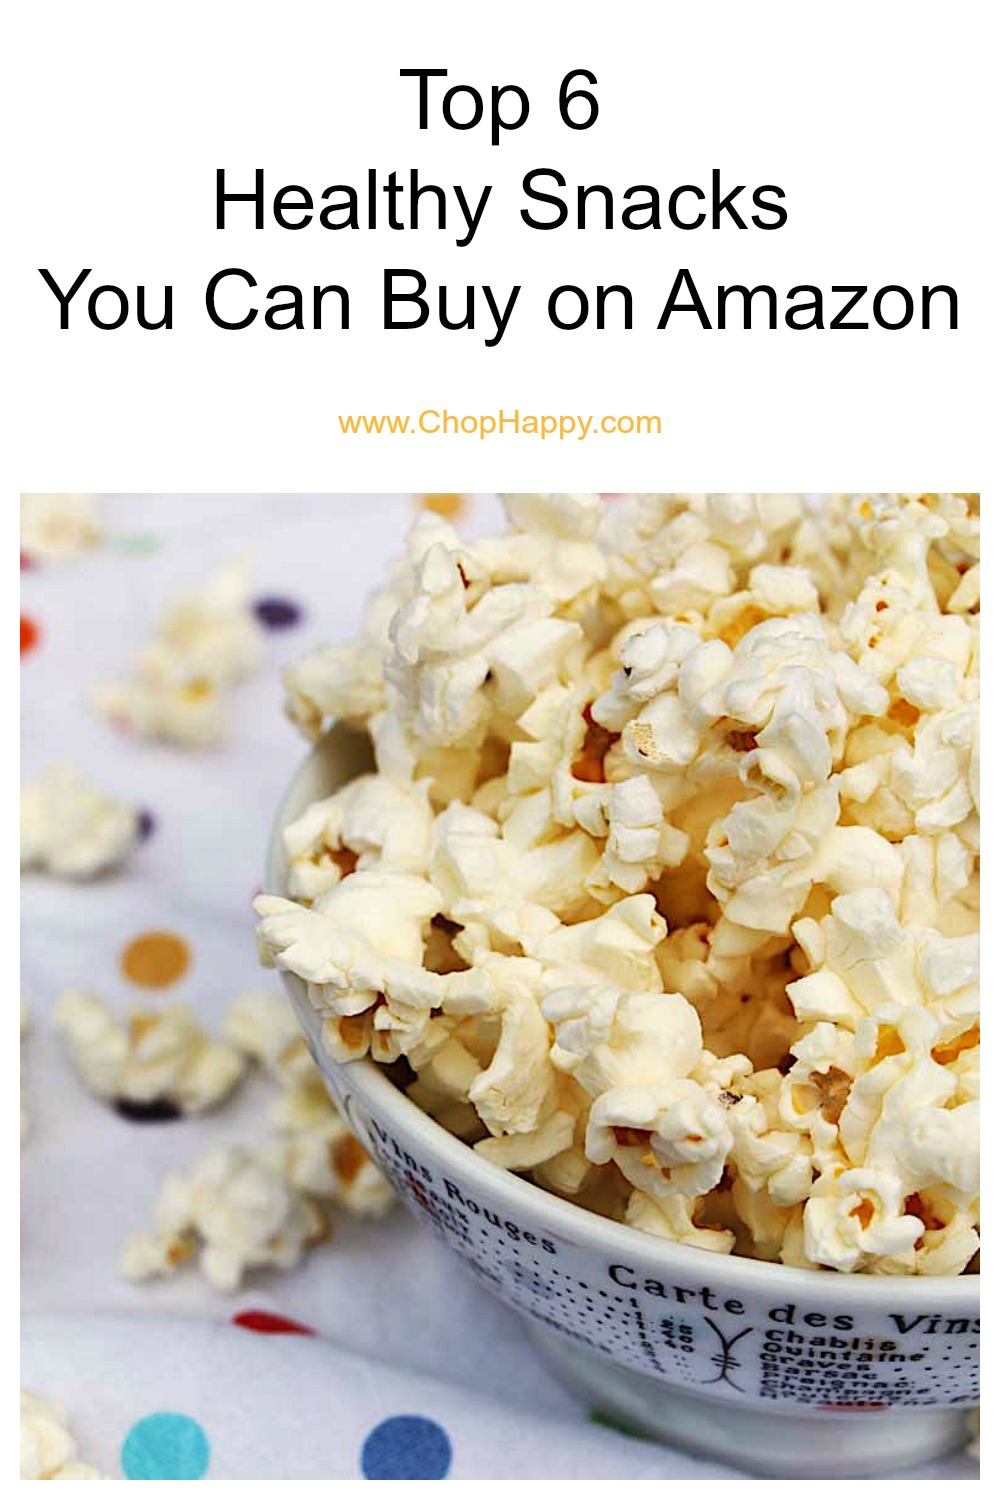 Top 6 Healthy Snacks You Can Buy on Amazon. Chipd, nuts, and other Keto friendly snacks to curb cravings. Happy snacking! #snackideas #keto